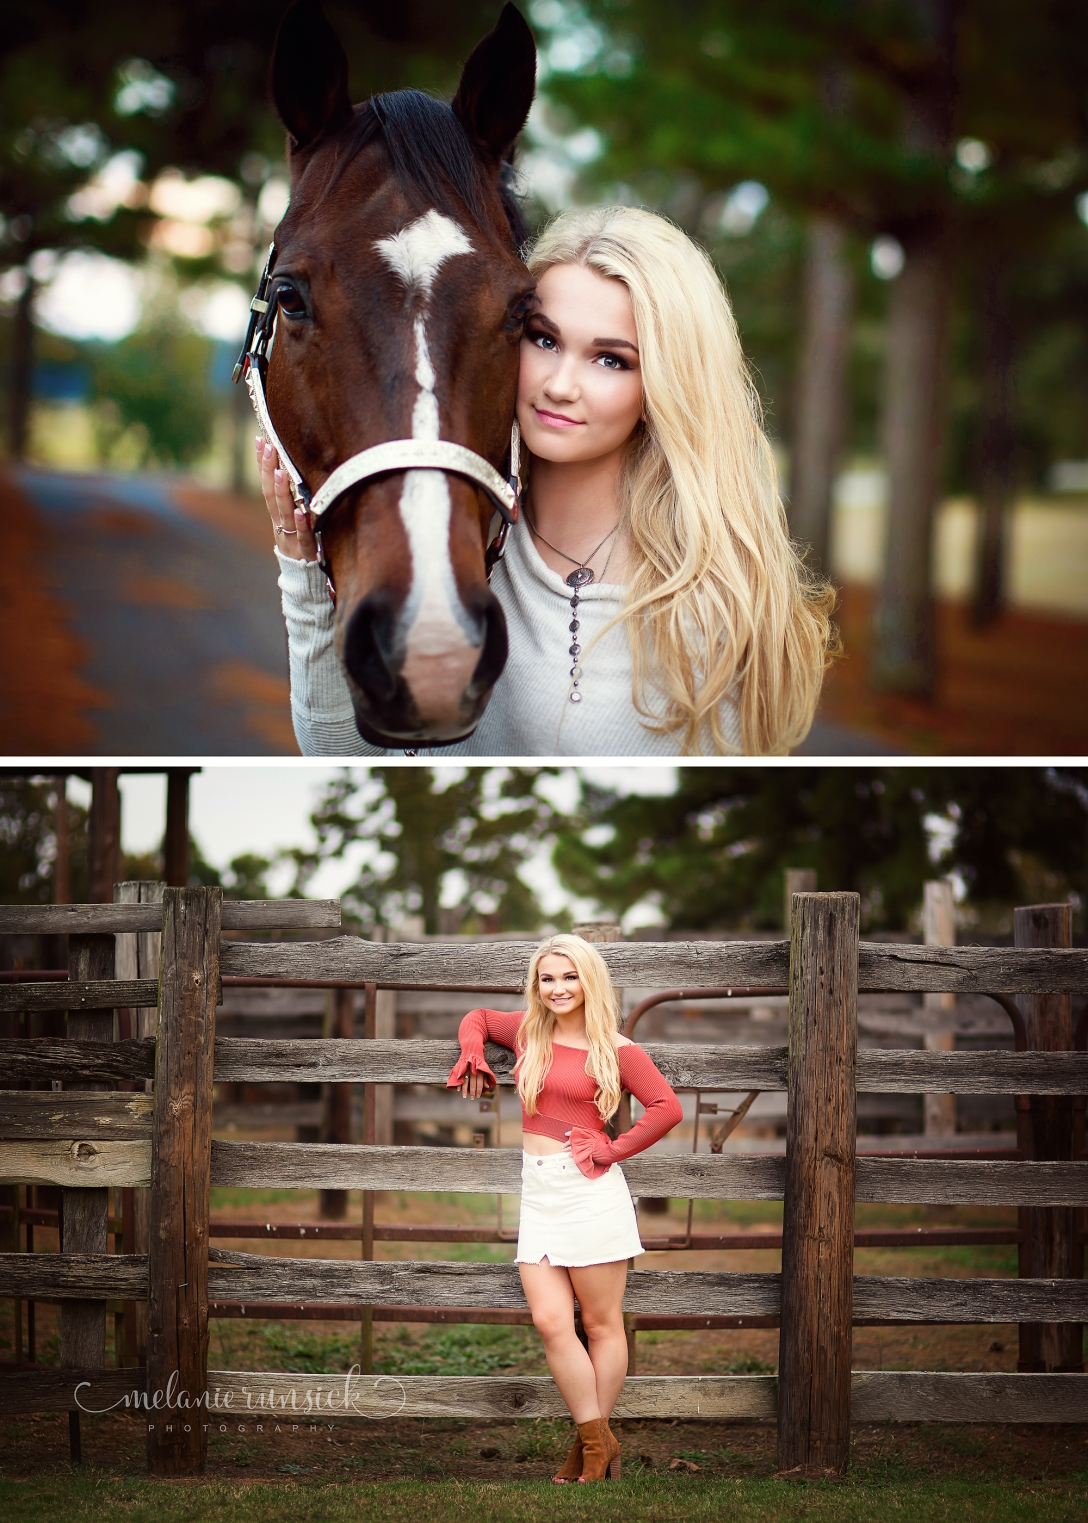 Melanie Runsick Photography Valley View Senior Photographer Jonesboro Arkansas